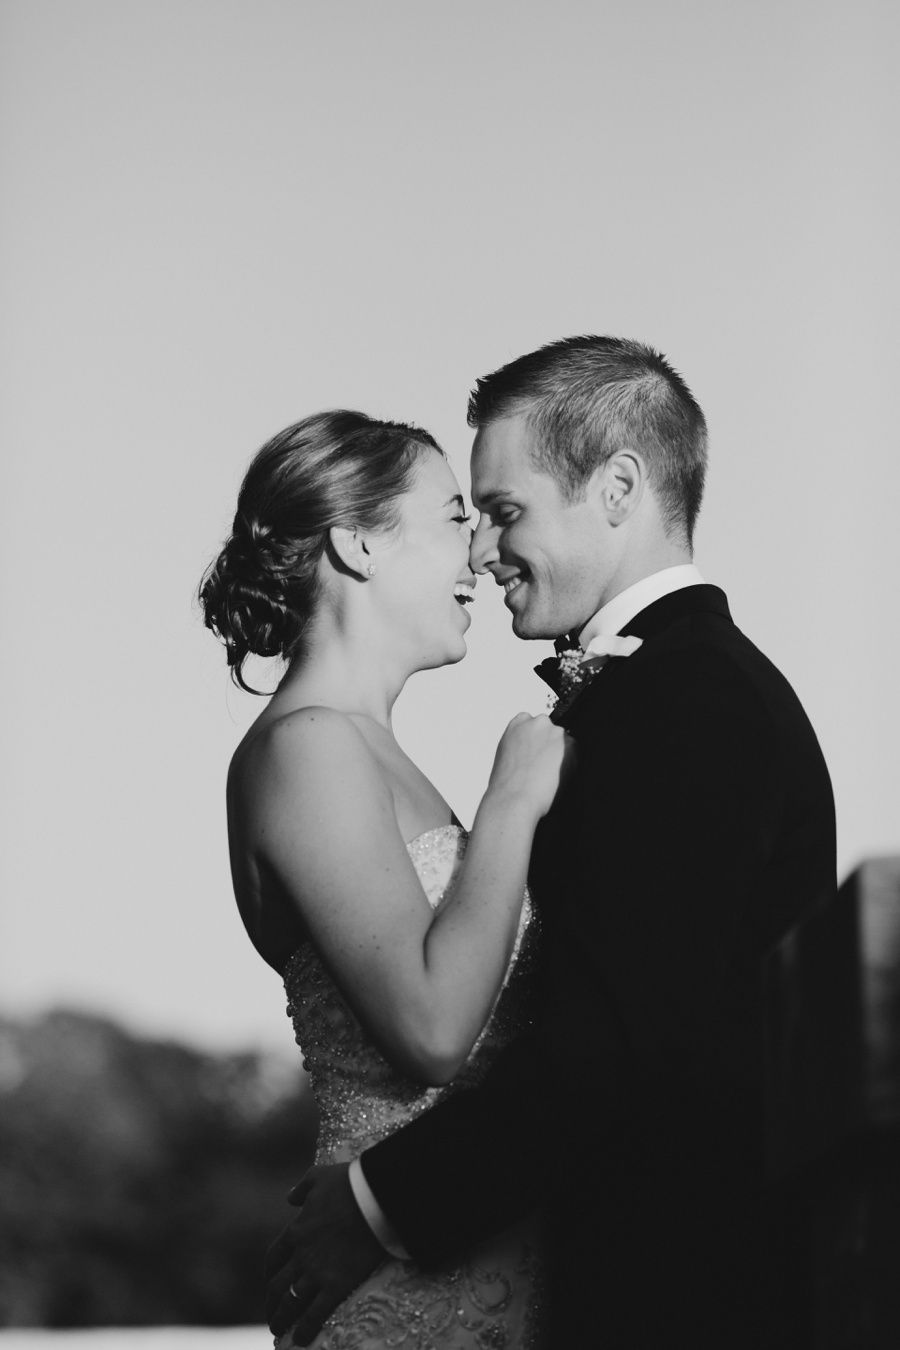 Candid Bride and Groom BW Wedding Picture at Borne Mansion - New York Wedding Photographer